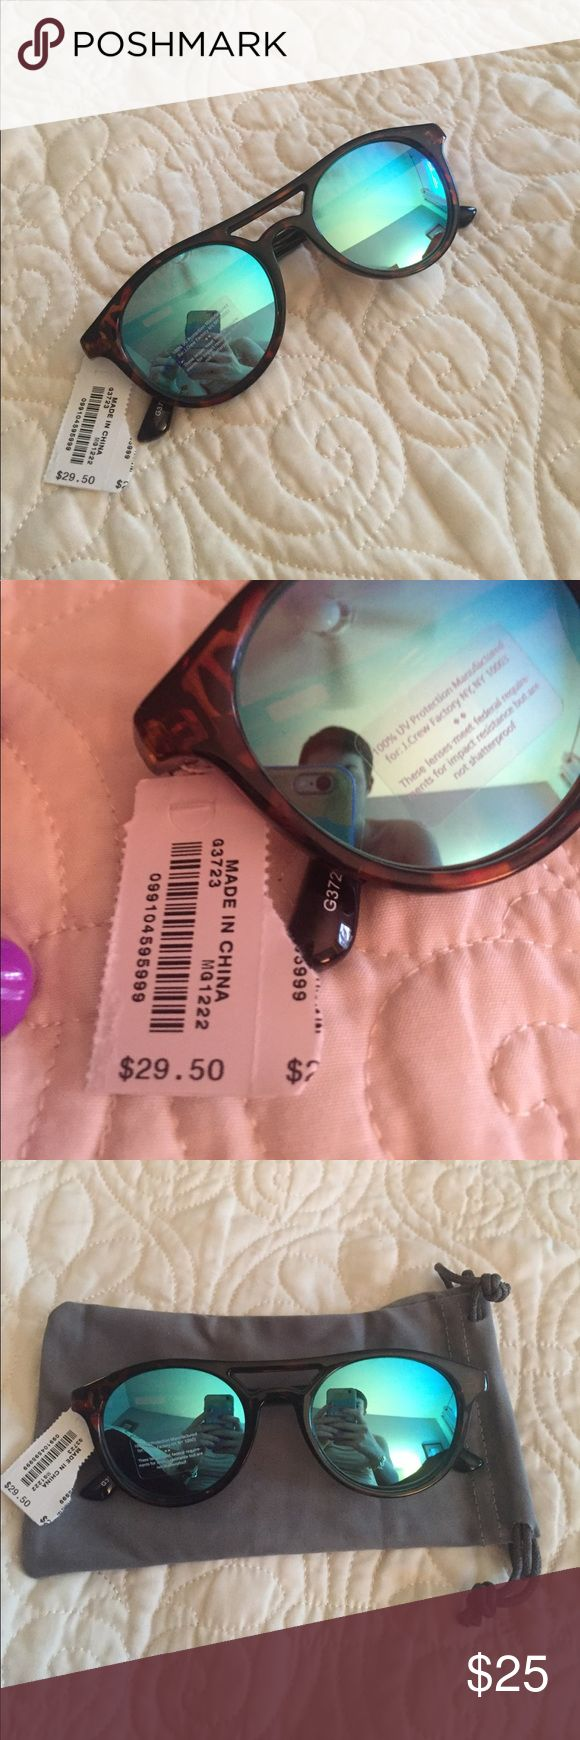 NWT J Crew Factory tortoise sunglasses NWT J Crew Factory tortoise sunglasses. Sticker still on lens. Comes with new cloth sunglasses pouch. J. Crew Factory Accessories Sunglasses